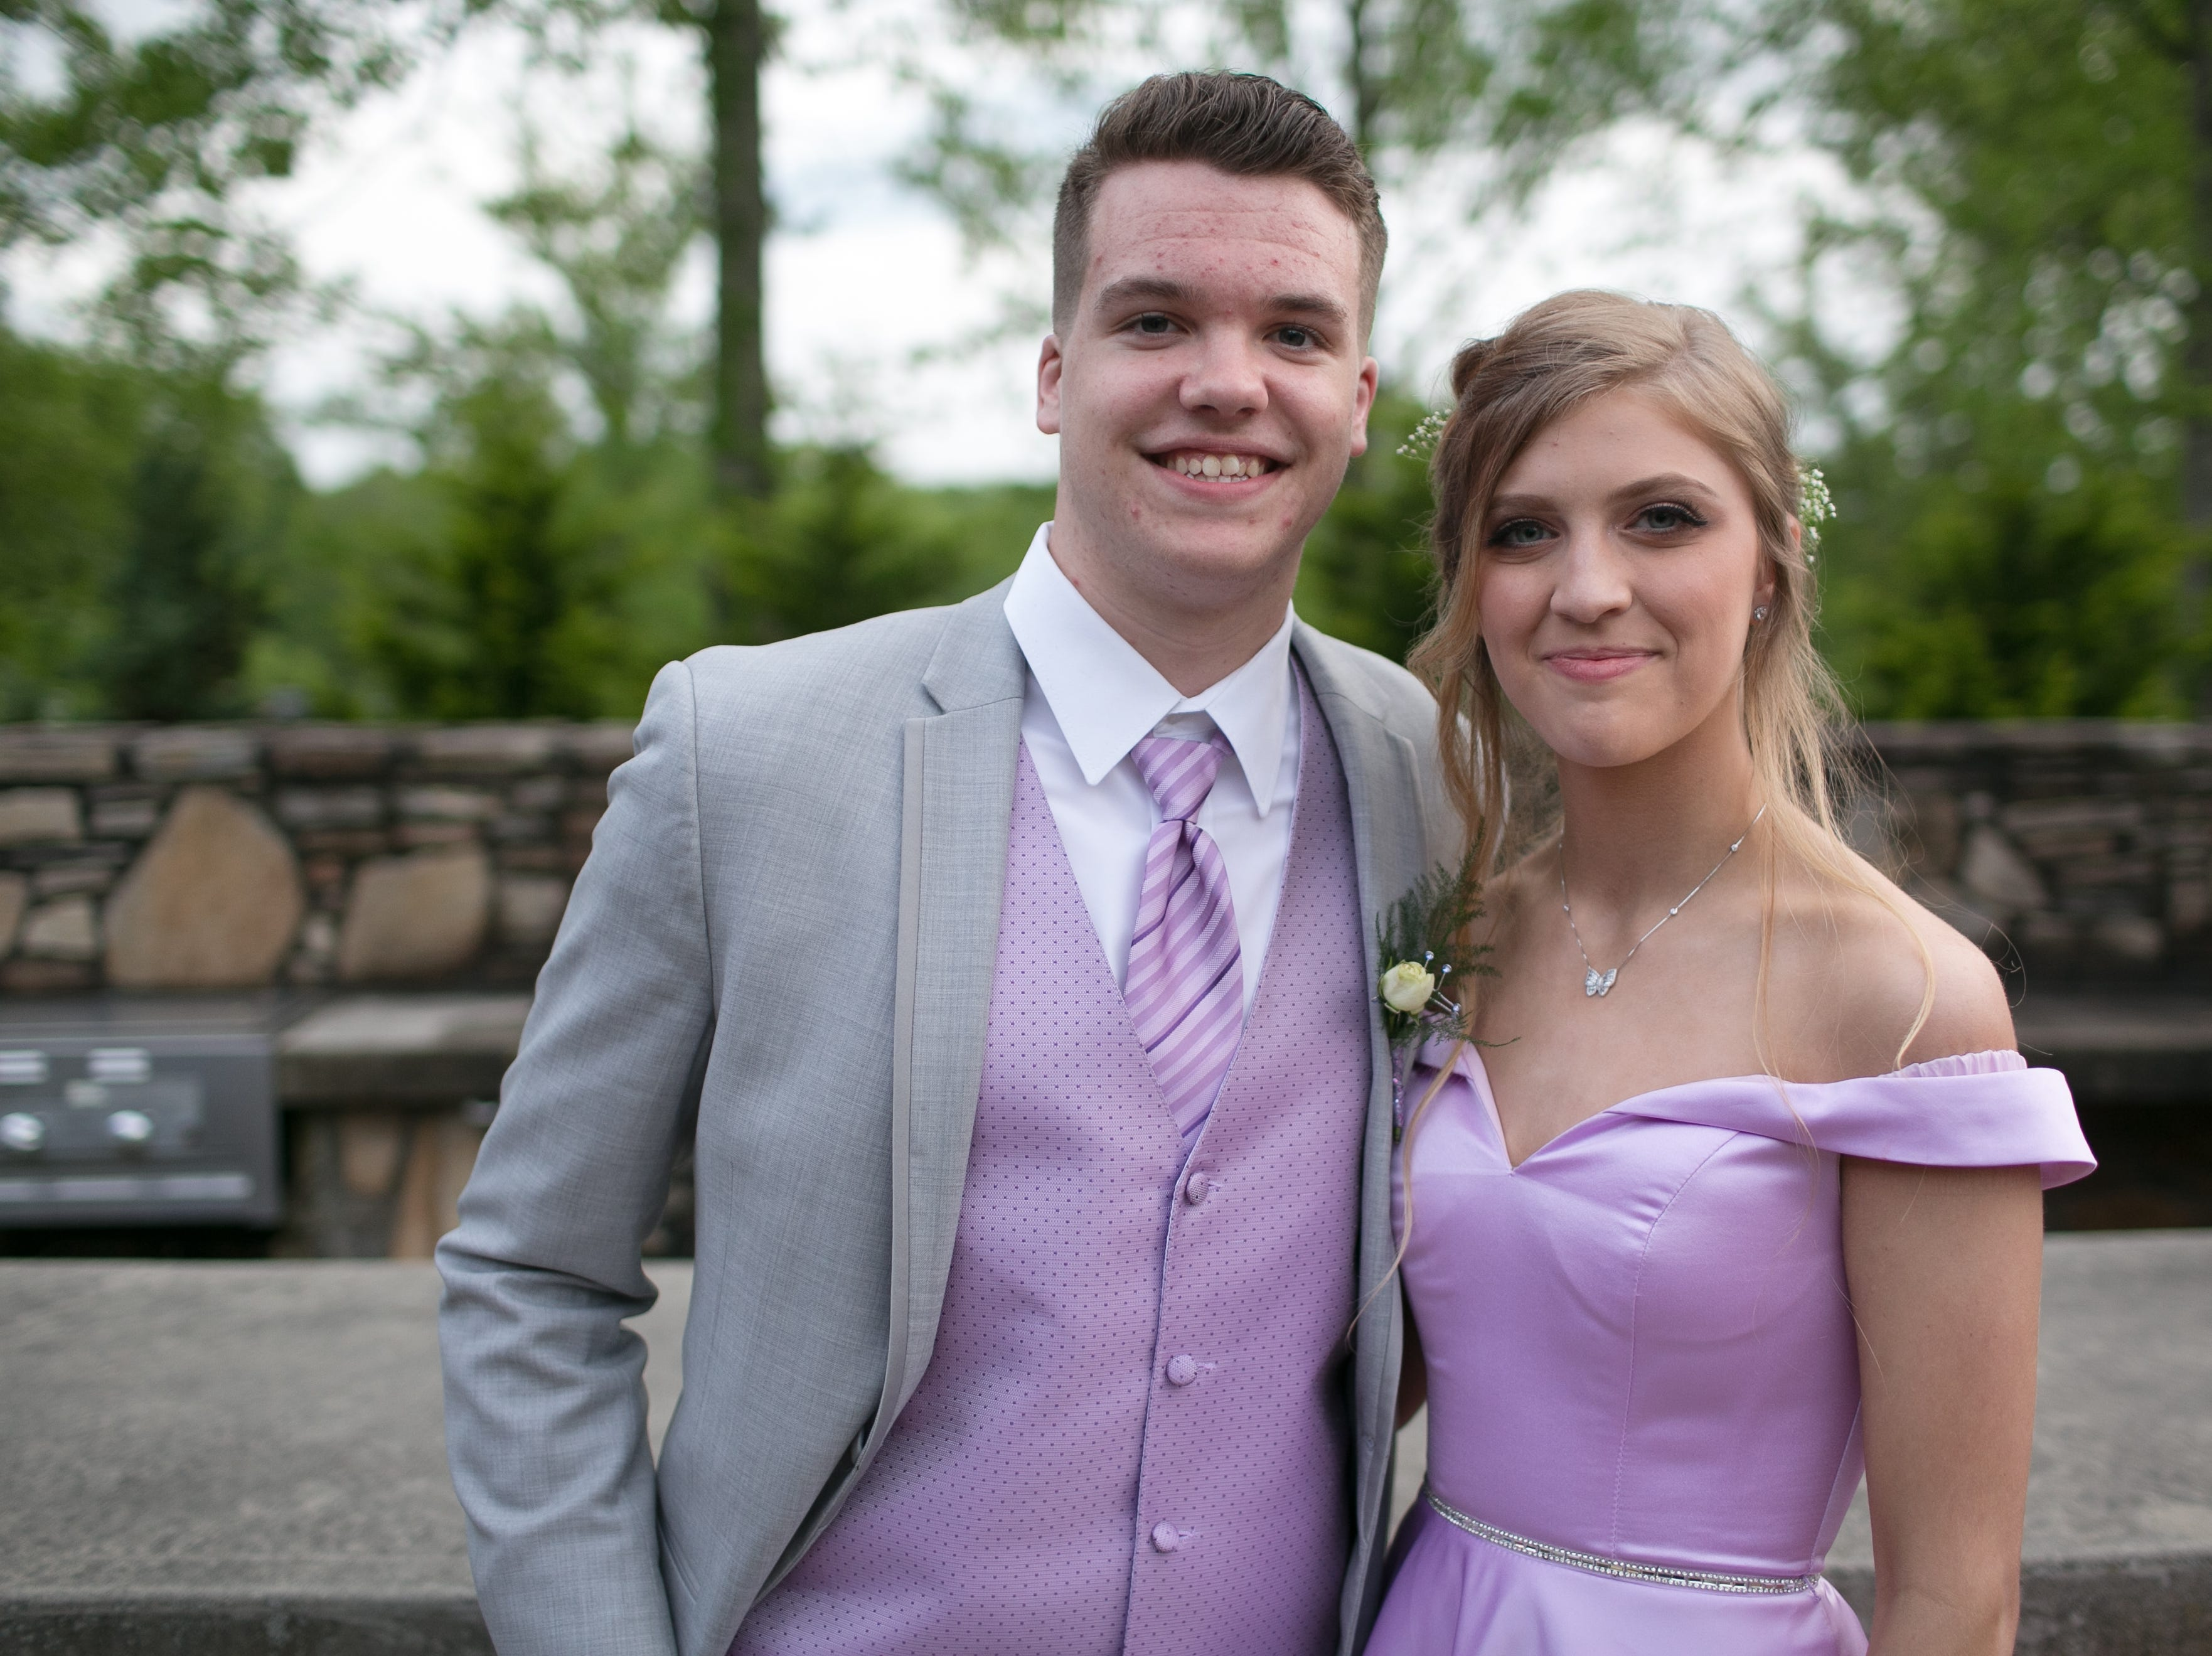 Madison High School celebrates prom on May 4, 2019, at the Crest Center Pavilion.